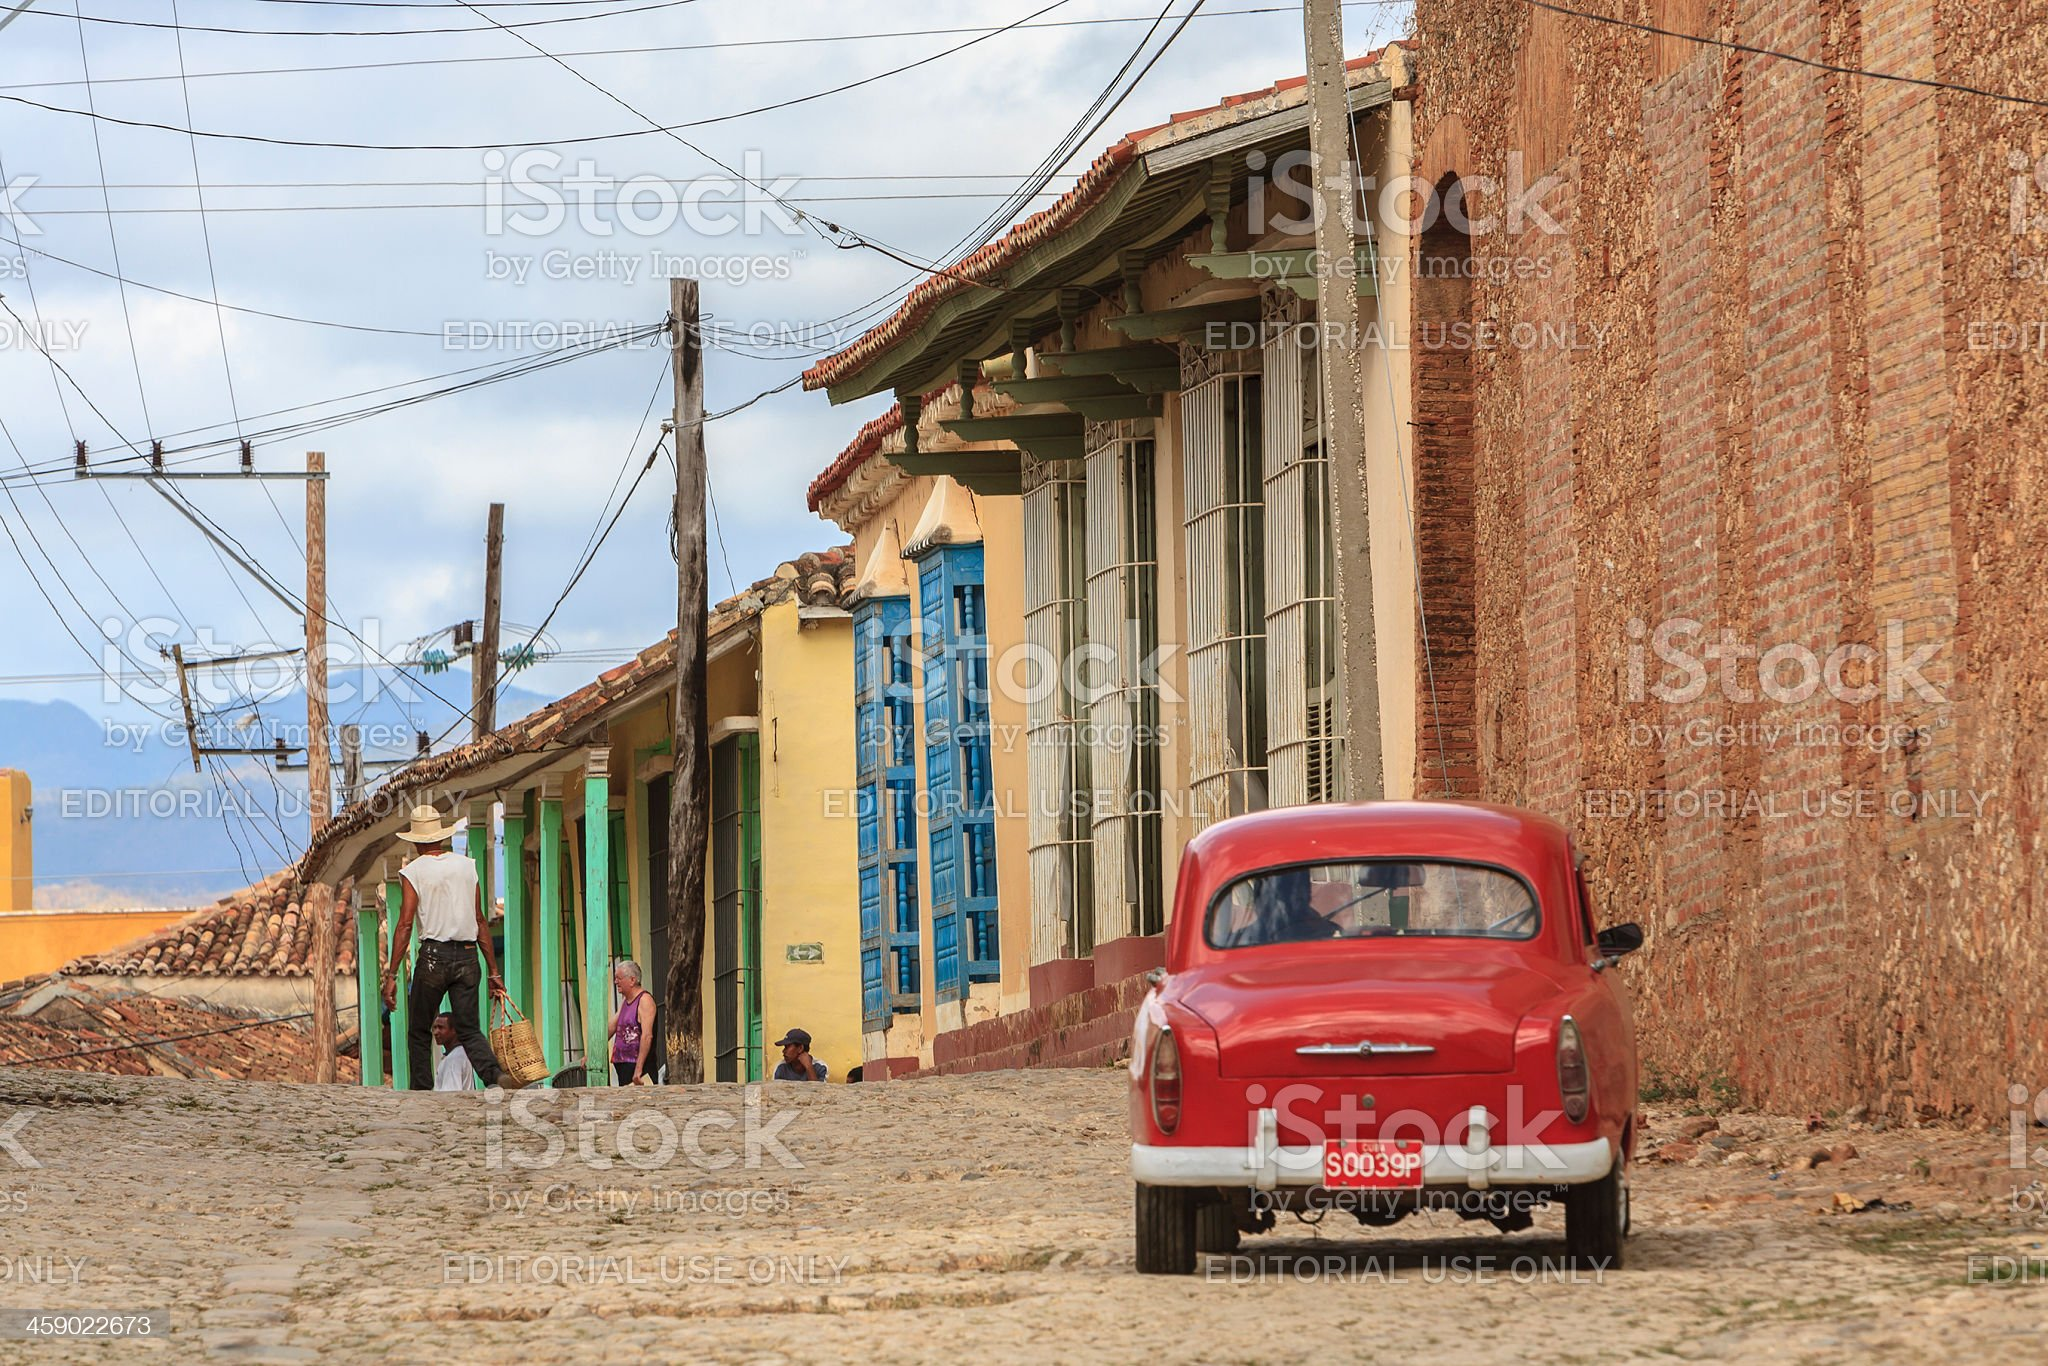 Vintage Car In Trinidad, Cuba royalty-free stock photo